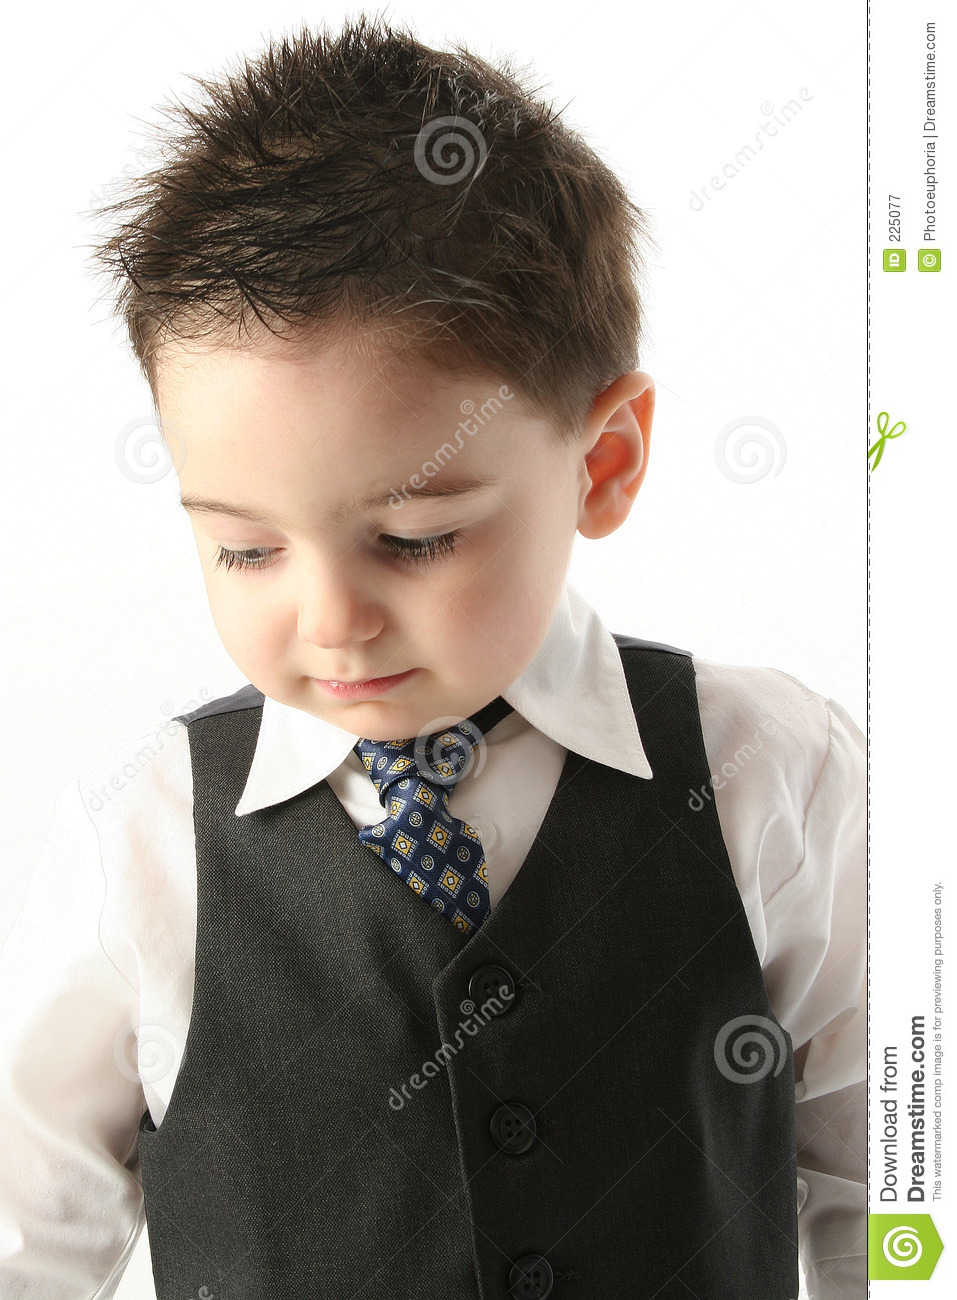 Download Adorable Toddler Boy In Vest And Tie Stock Image - Image of american, children: 225077